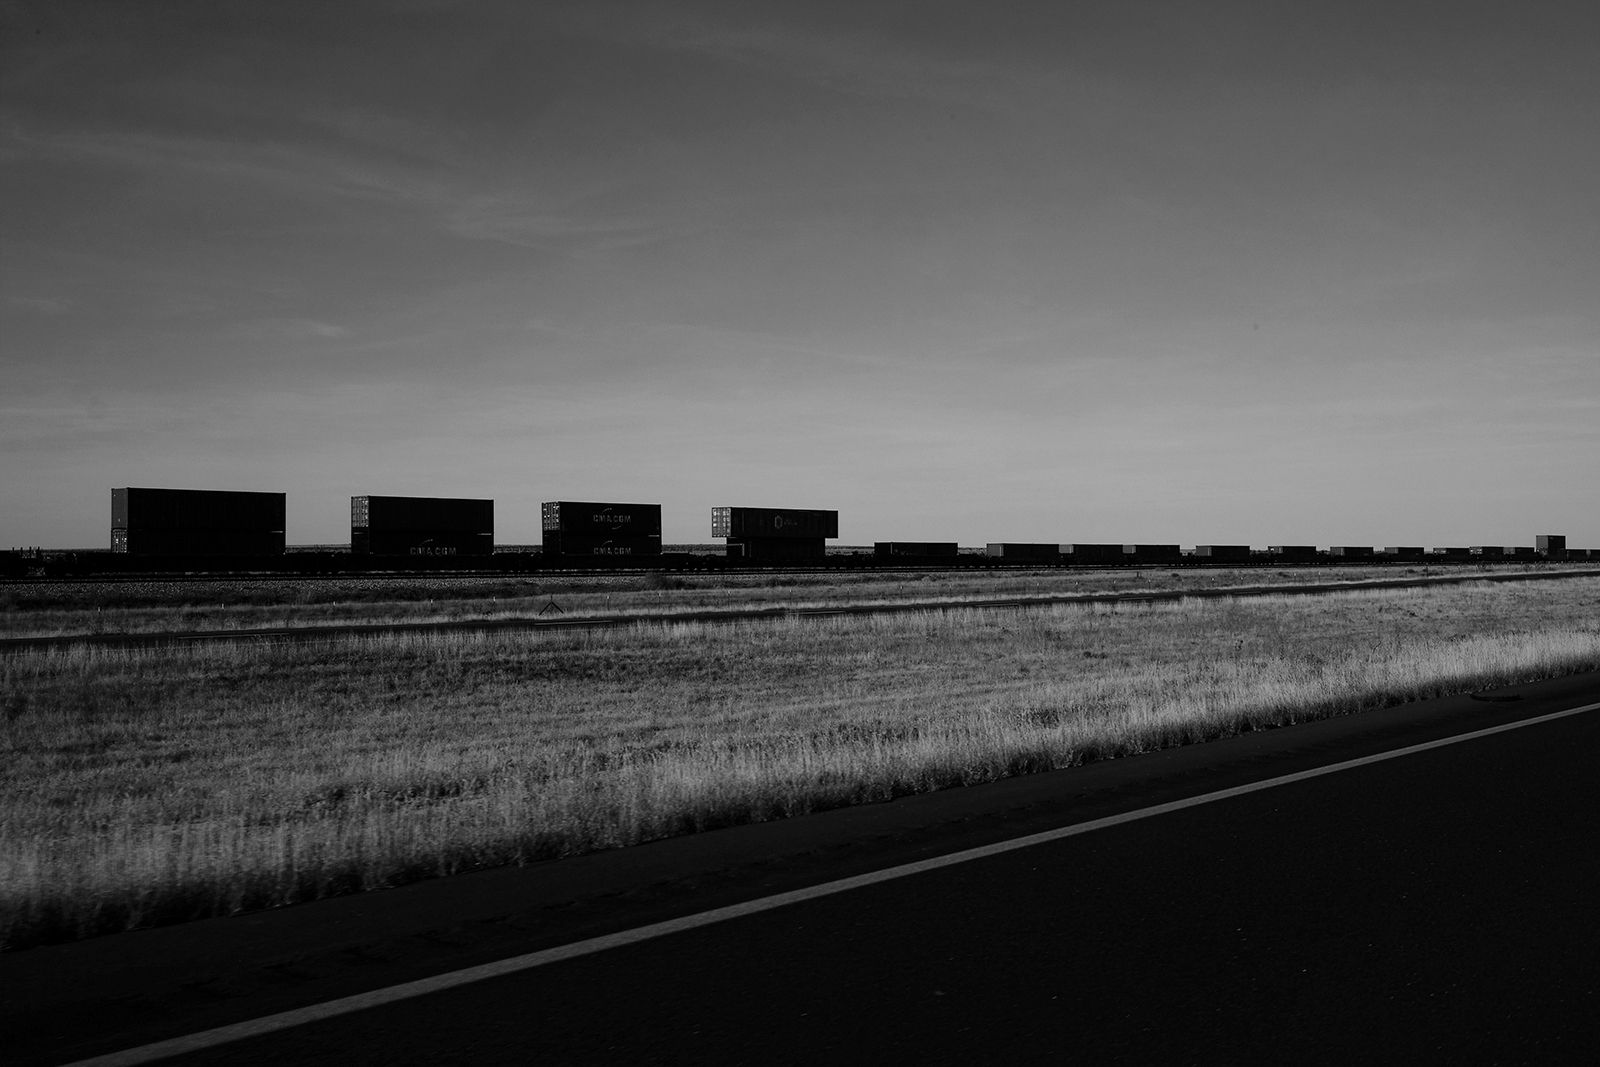 Interstate 40, New Mexico - AMERICANS 45 on